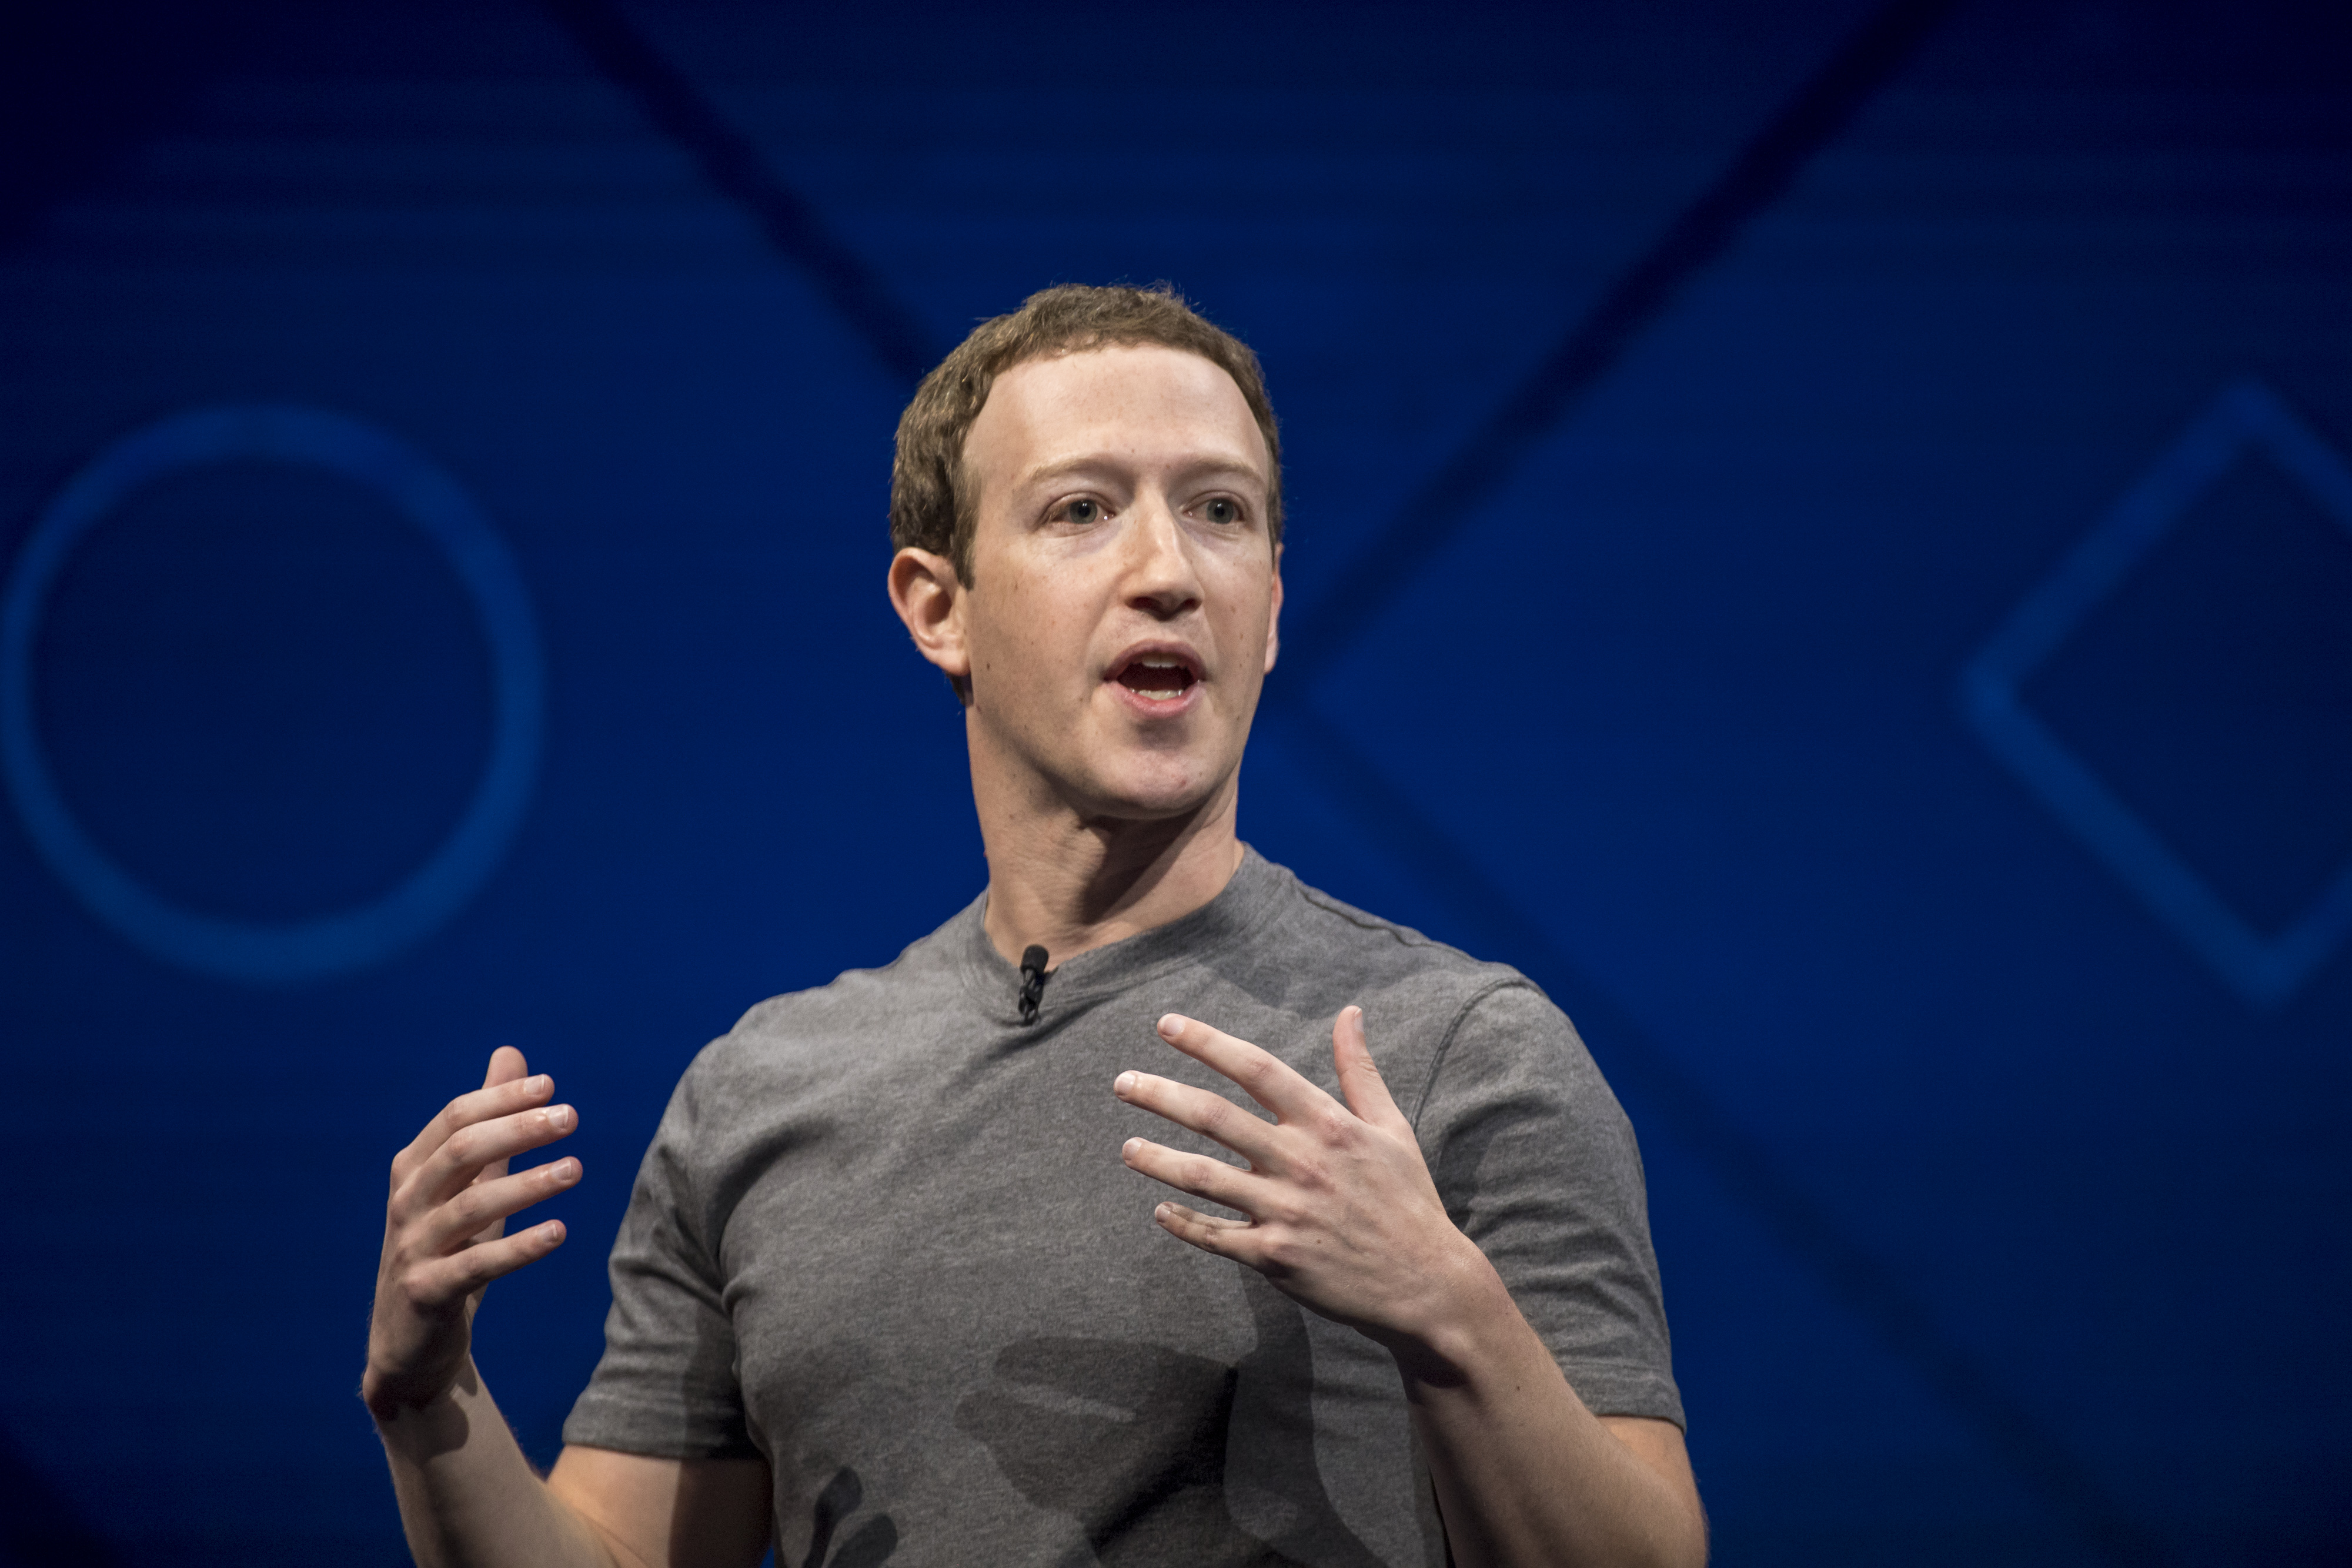 Mark Zuckerberg, chief executive officer and founder of Facebook Inc., speaks during the F8 Developers Conference in San Jose, California, U.S., on Tuesday, April 18, 2017.